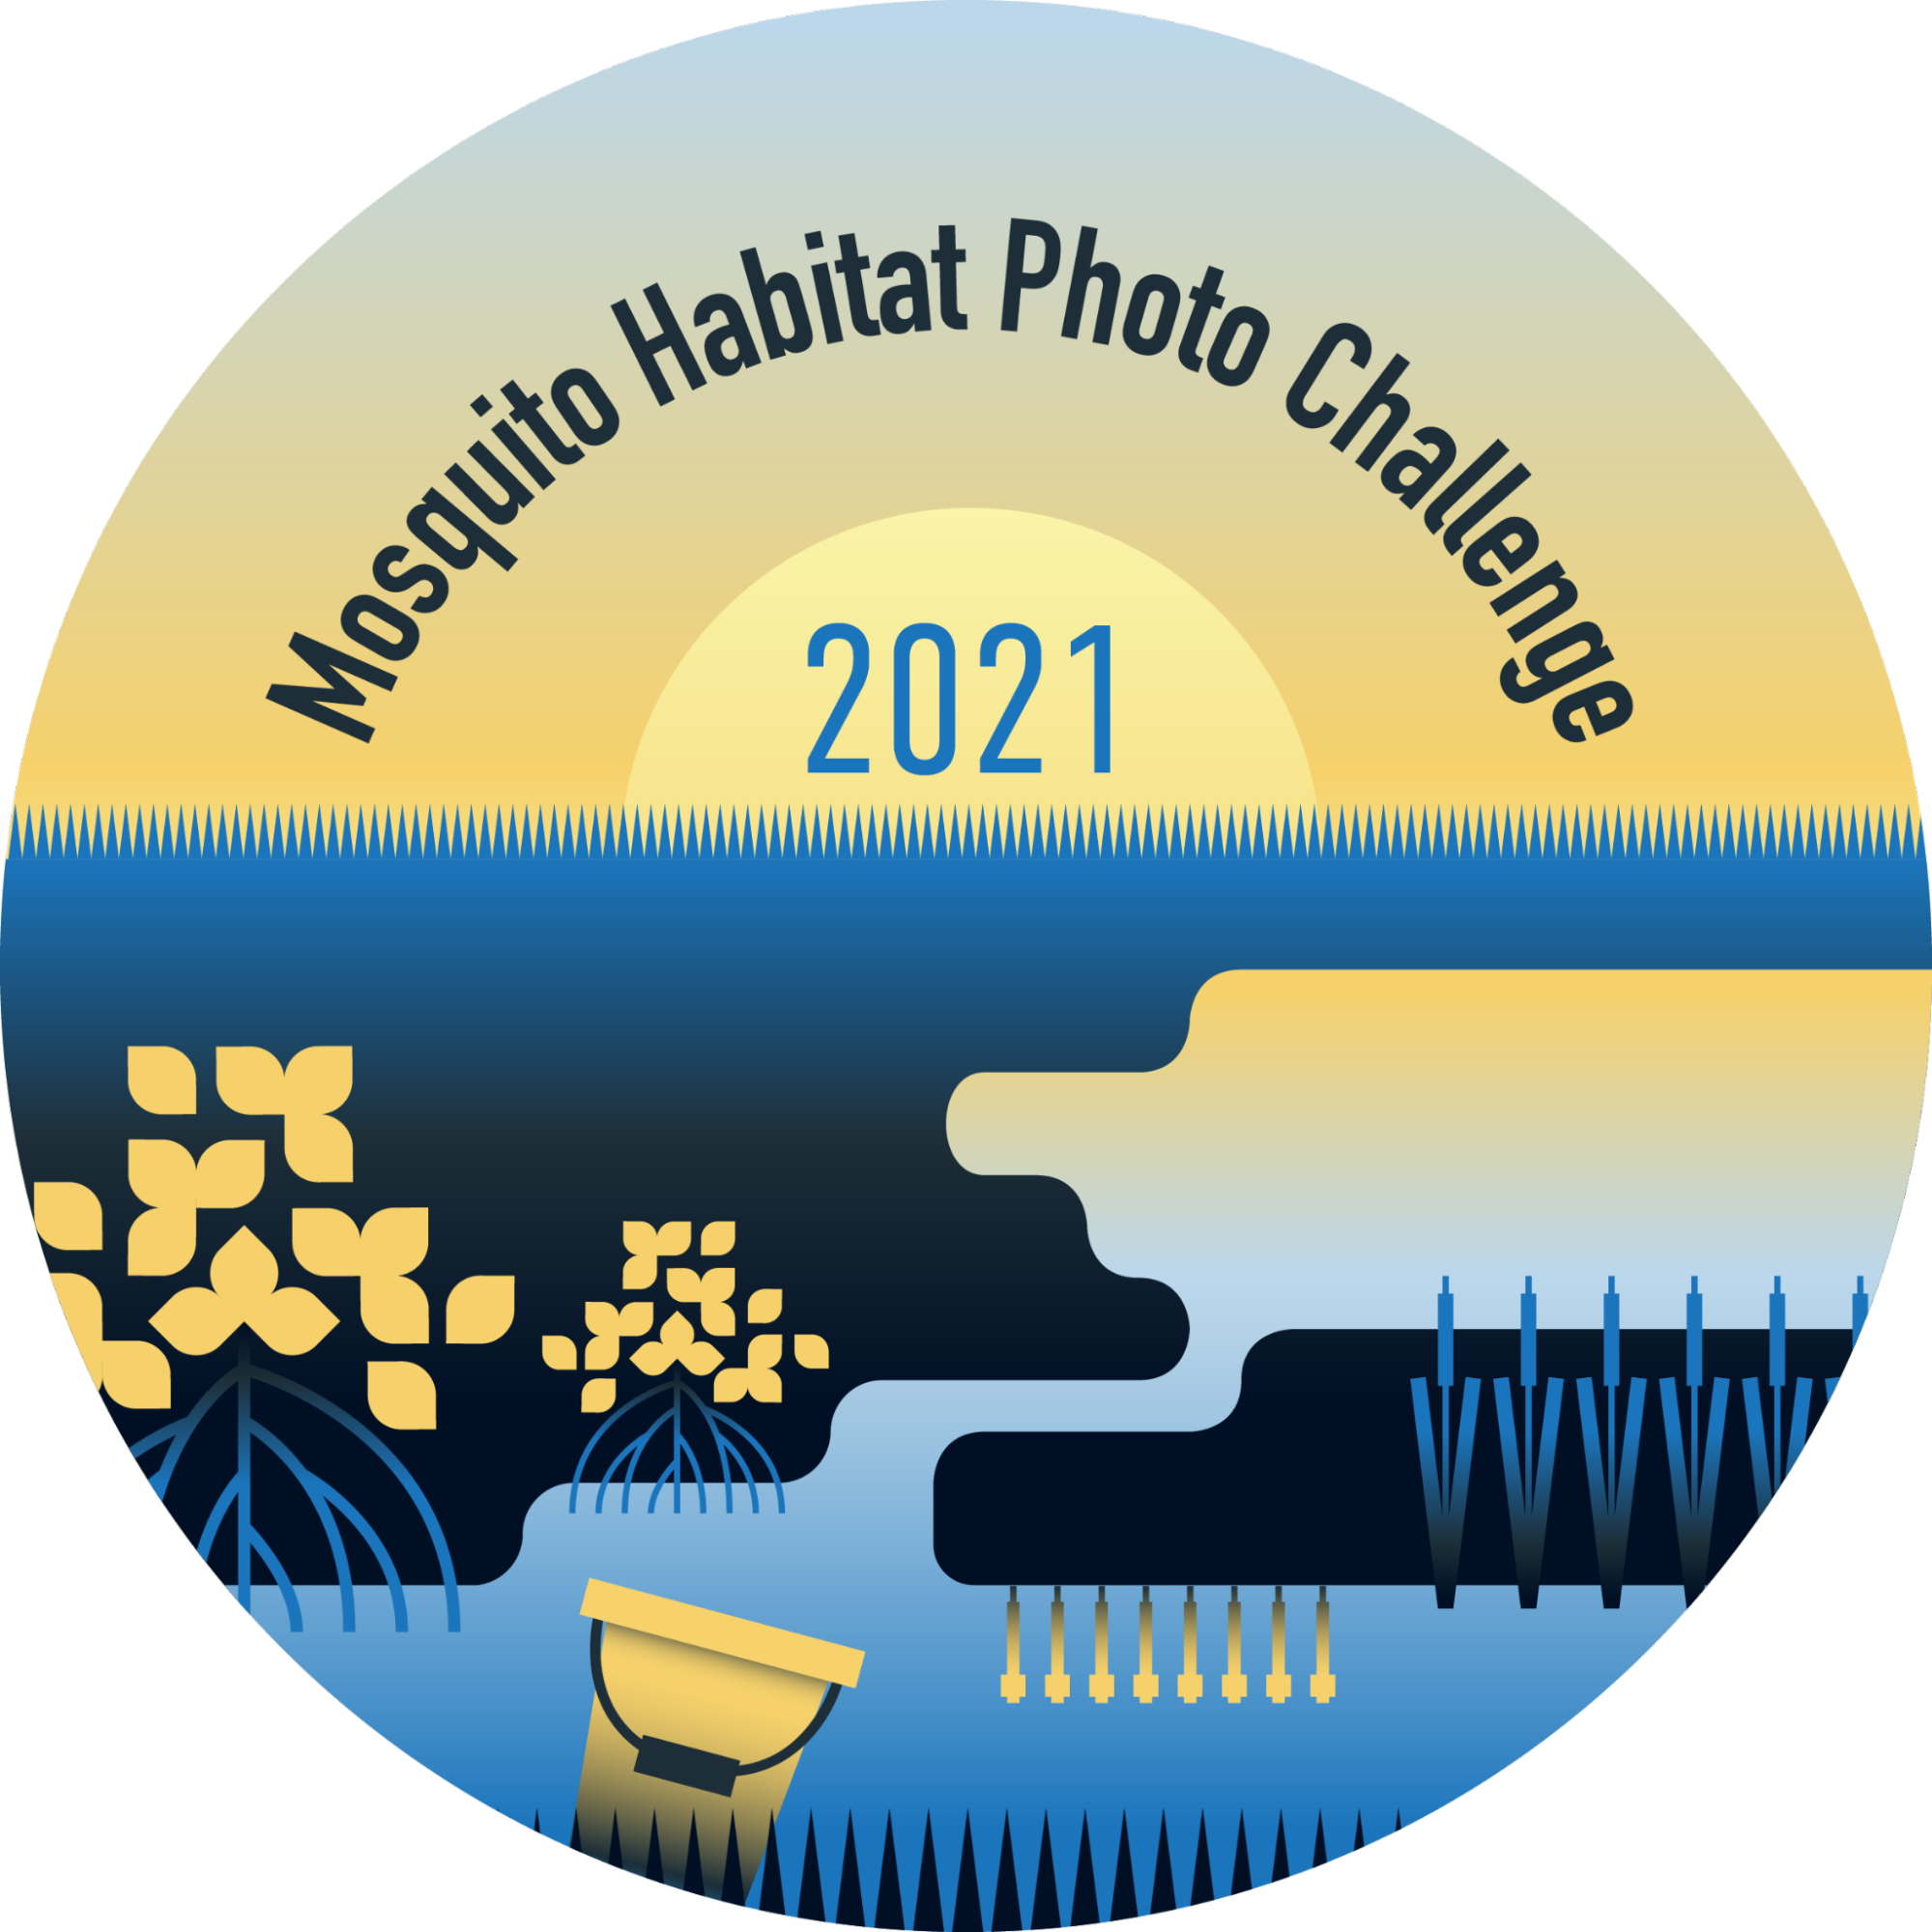 A badge showing a graphical representation of mosquito habitats on a landscape with the words Mosquito Habitat Photo Challenge 2021